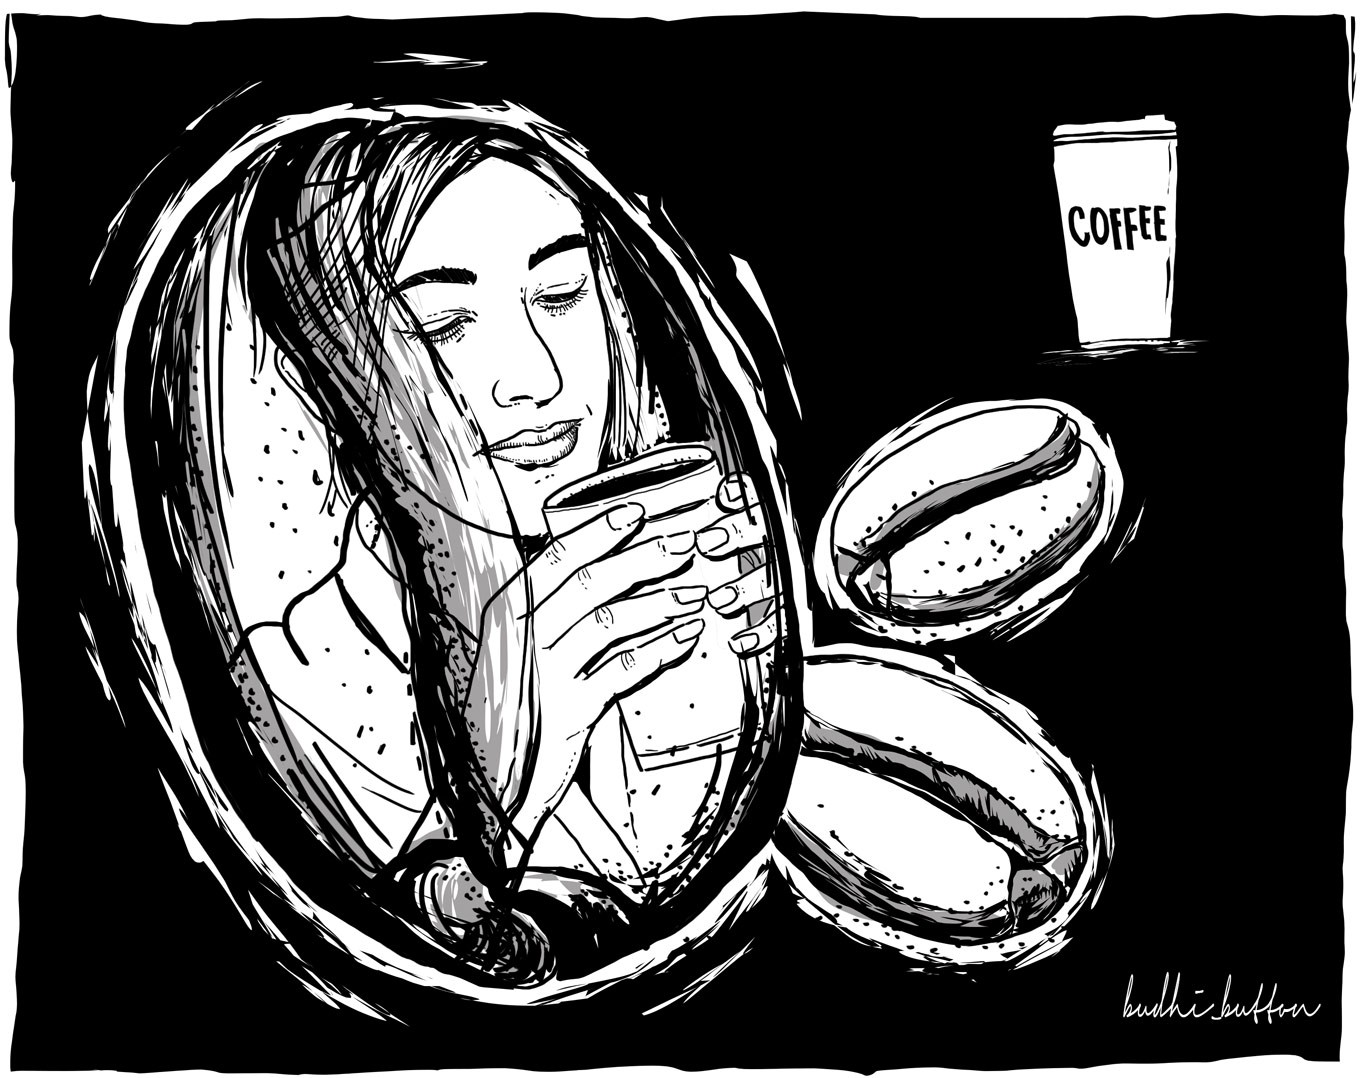 Short Story: Life is a Coffee Bean